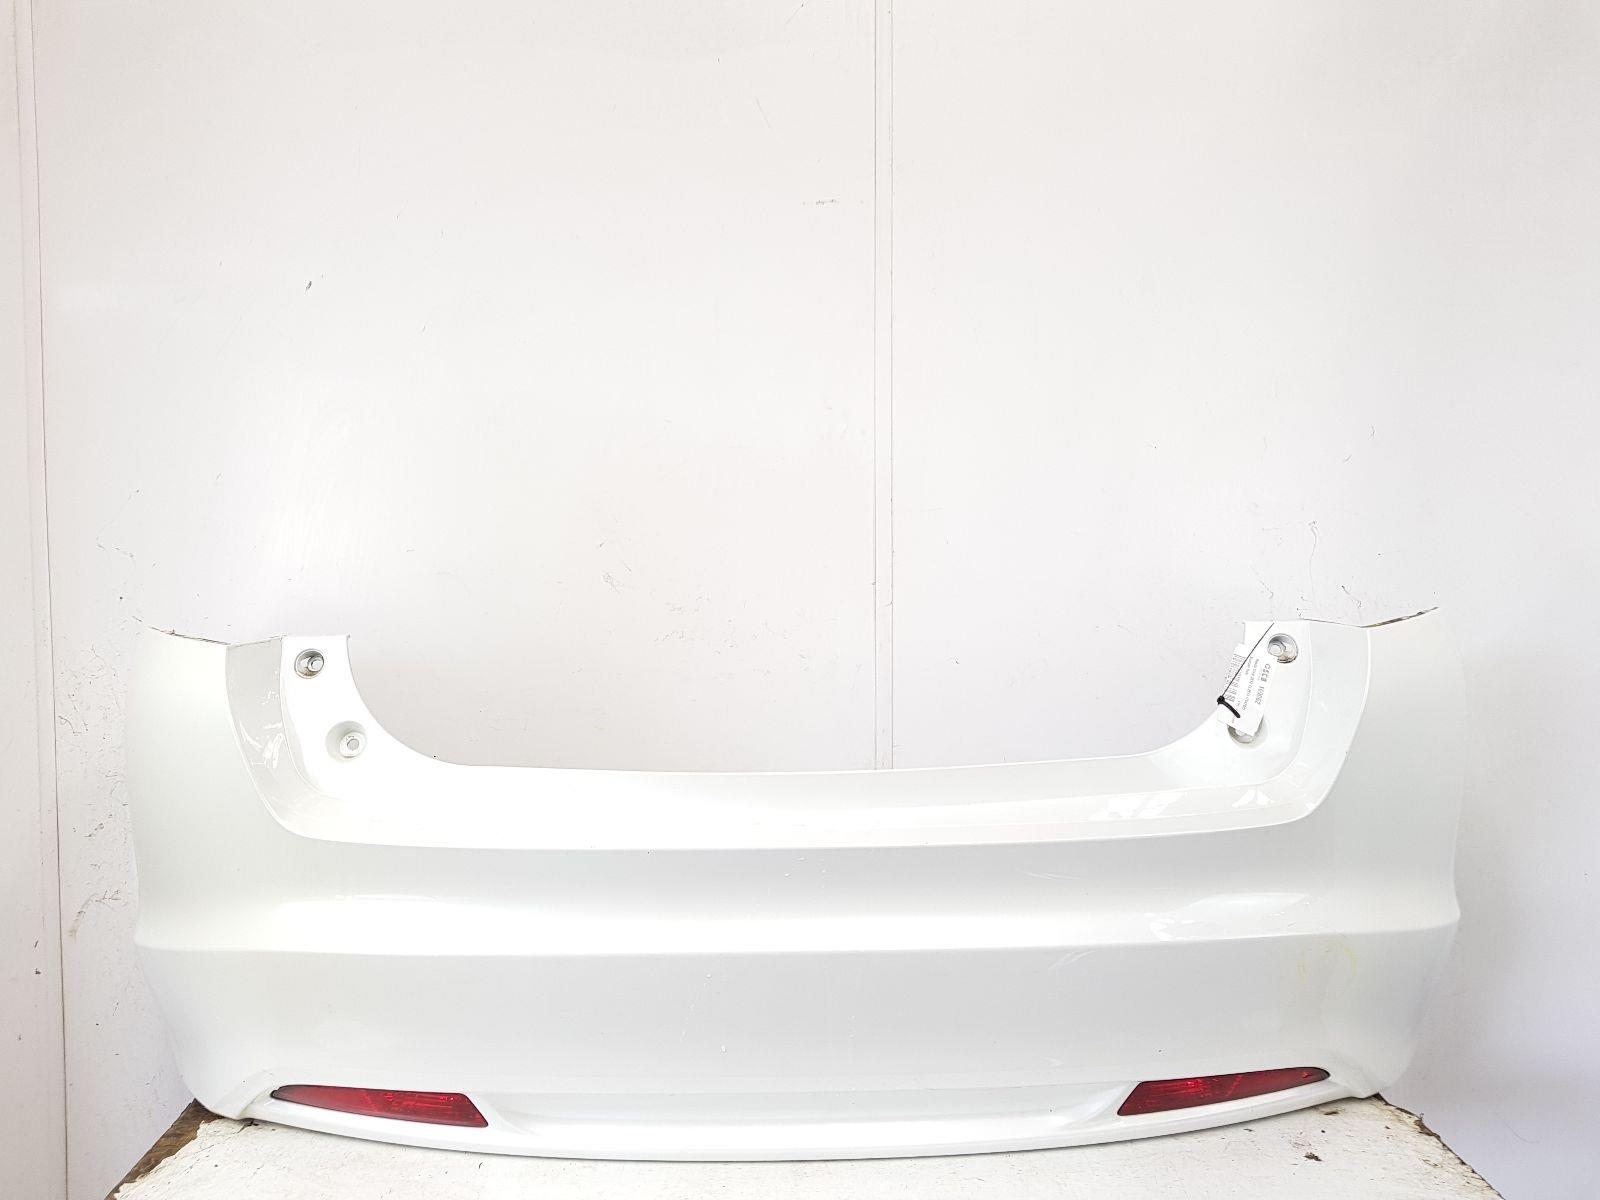 2011-2016 MK9 HONDA CIVIC REAR BUMPER WHITE 5 DOOR HATCHBACK